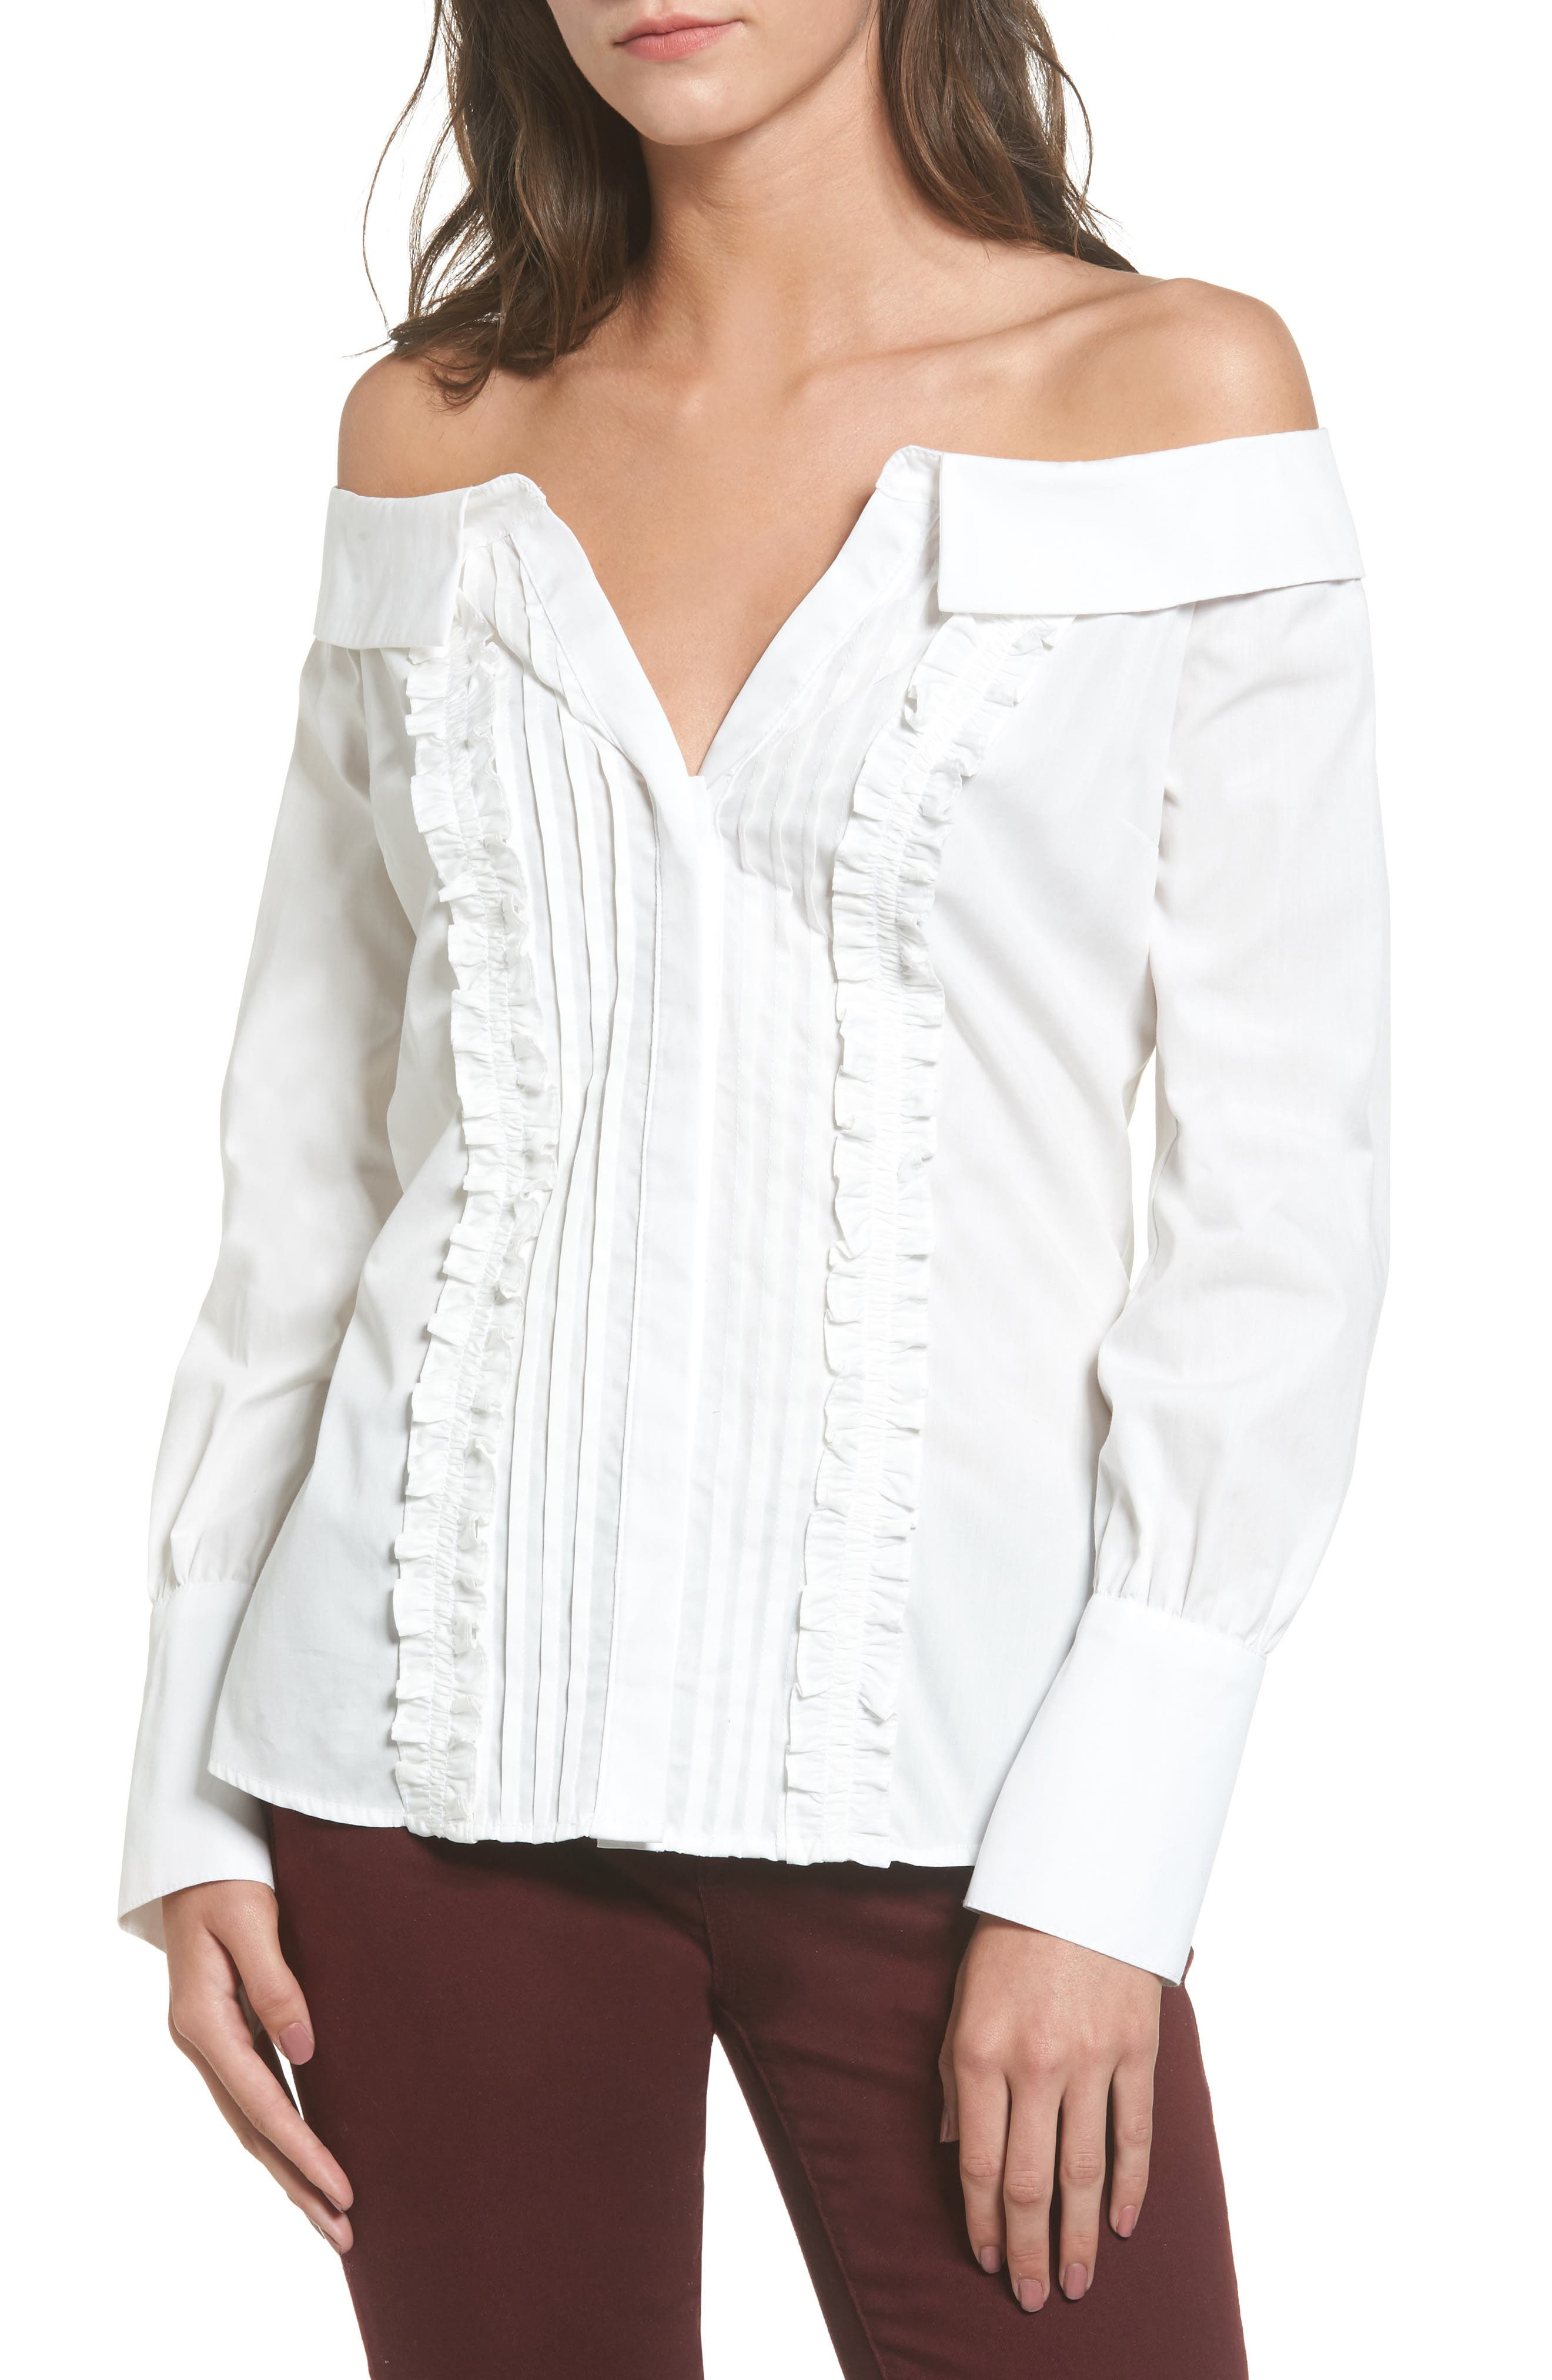 Socialite Ruffle Off the Shoulder Shirt